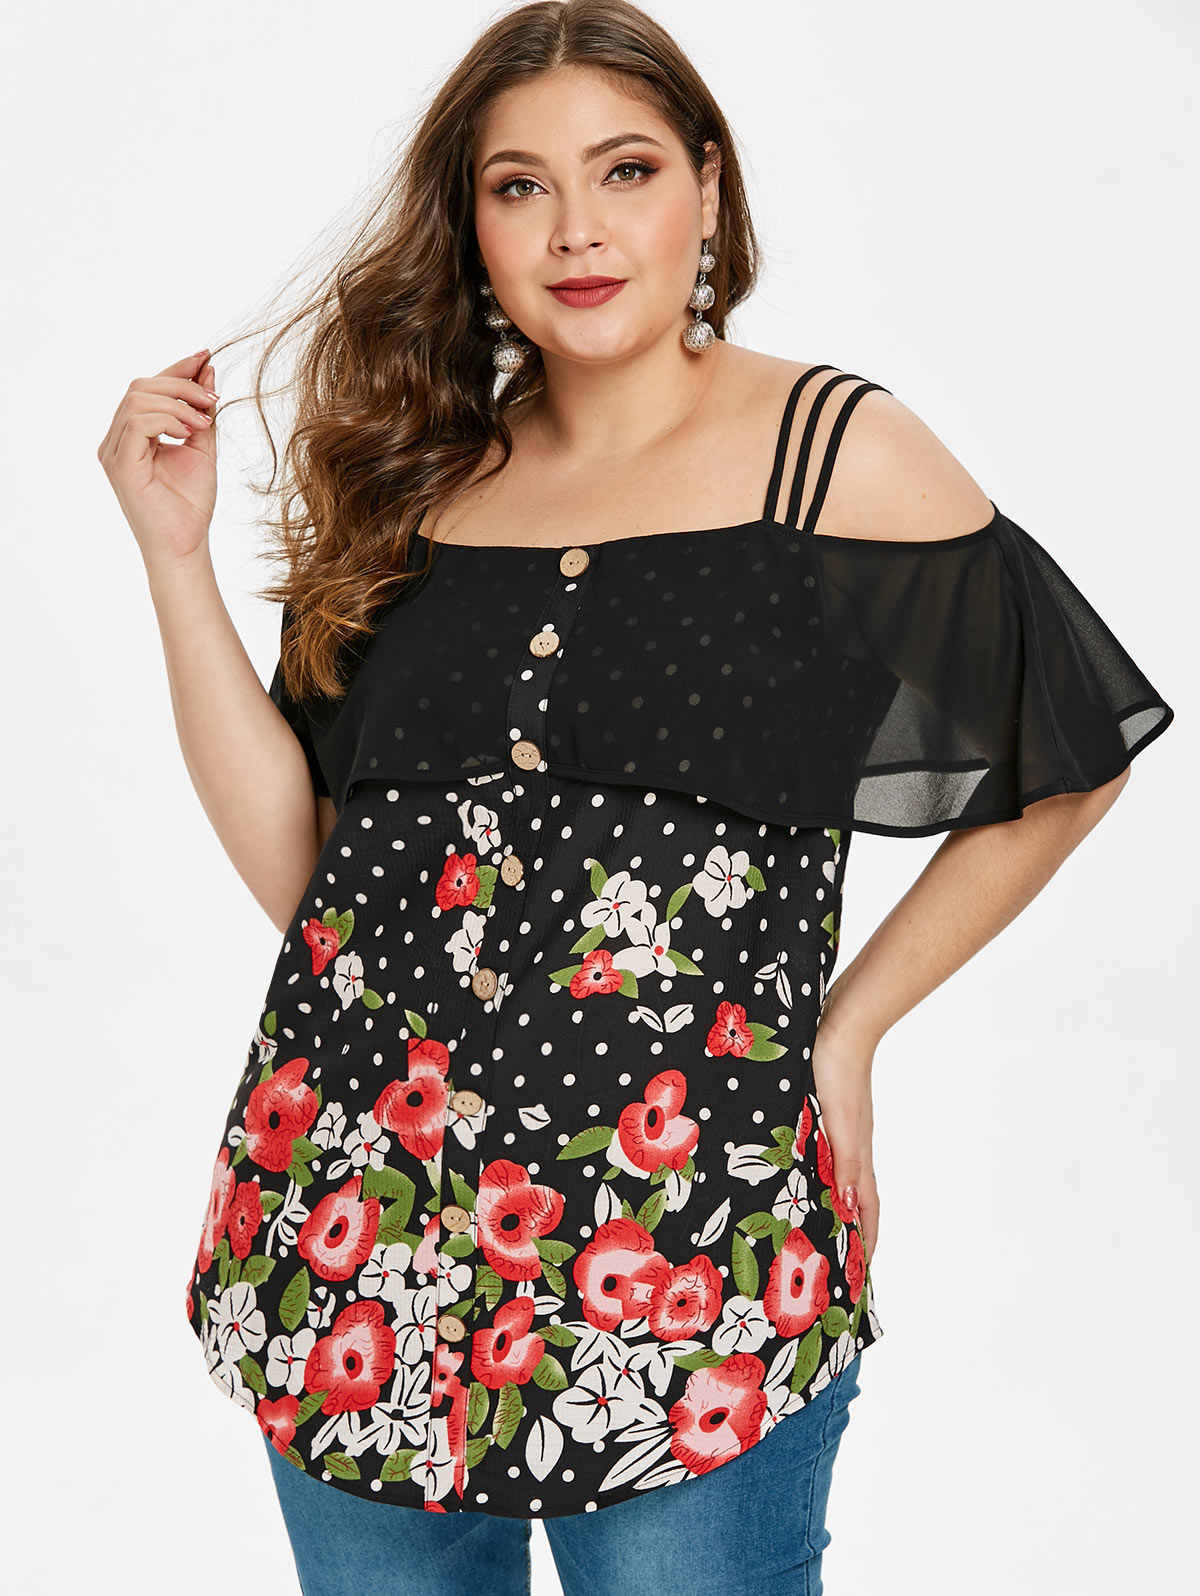 7a709d850a065 Detail Feedback Questions about Wipalo Women Plus Size Cold Shoulder ...